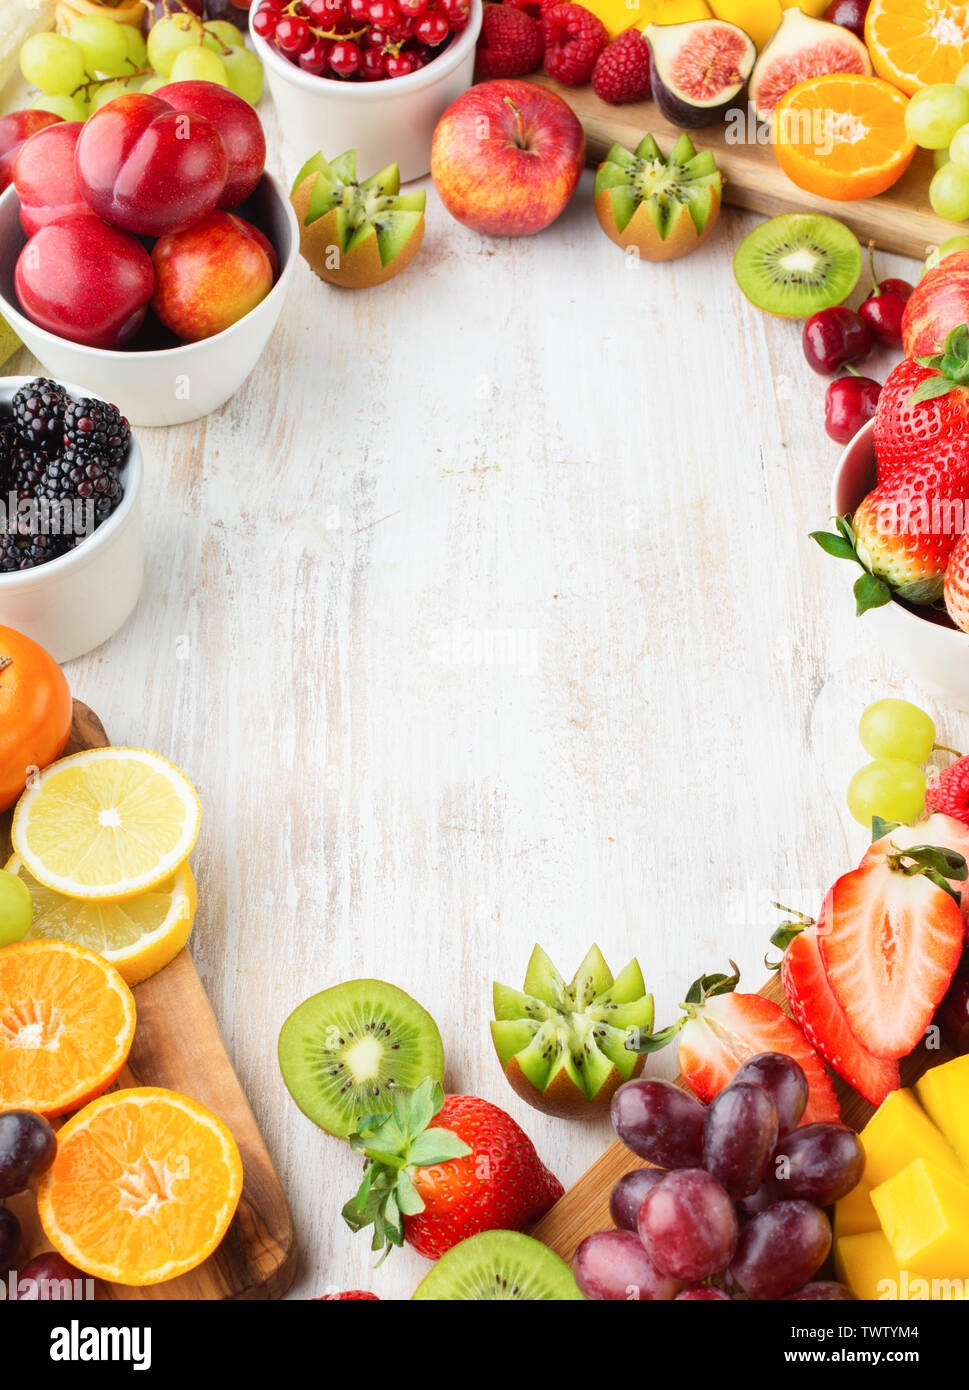 Healthy raw background, cut fruits, strawberries raspberries oranges plums apples kiwis grapes blueberries mango persimmon, on white table, copy space - Stock Image